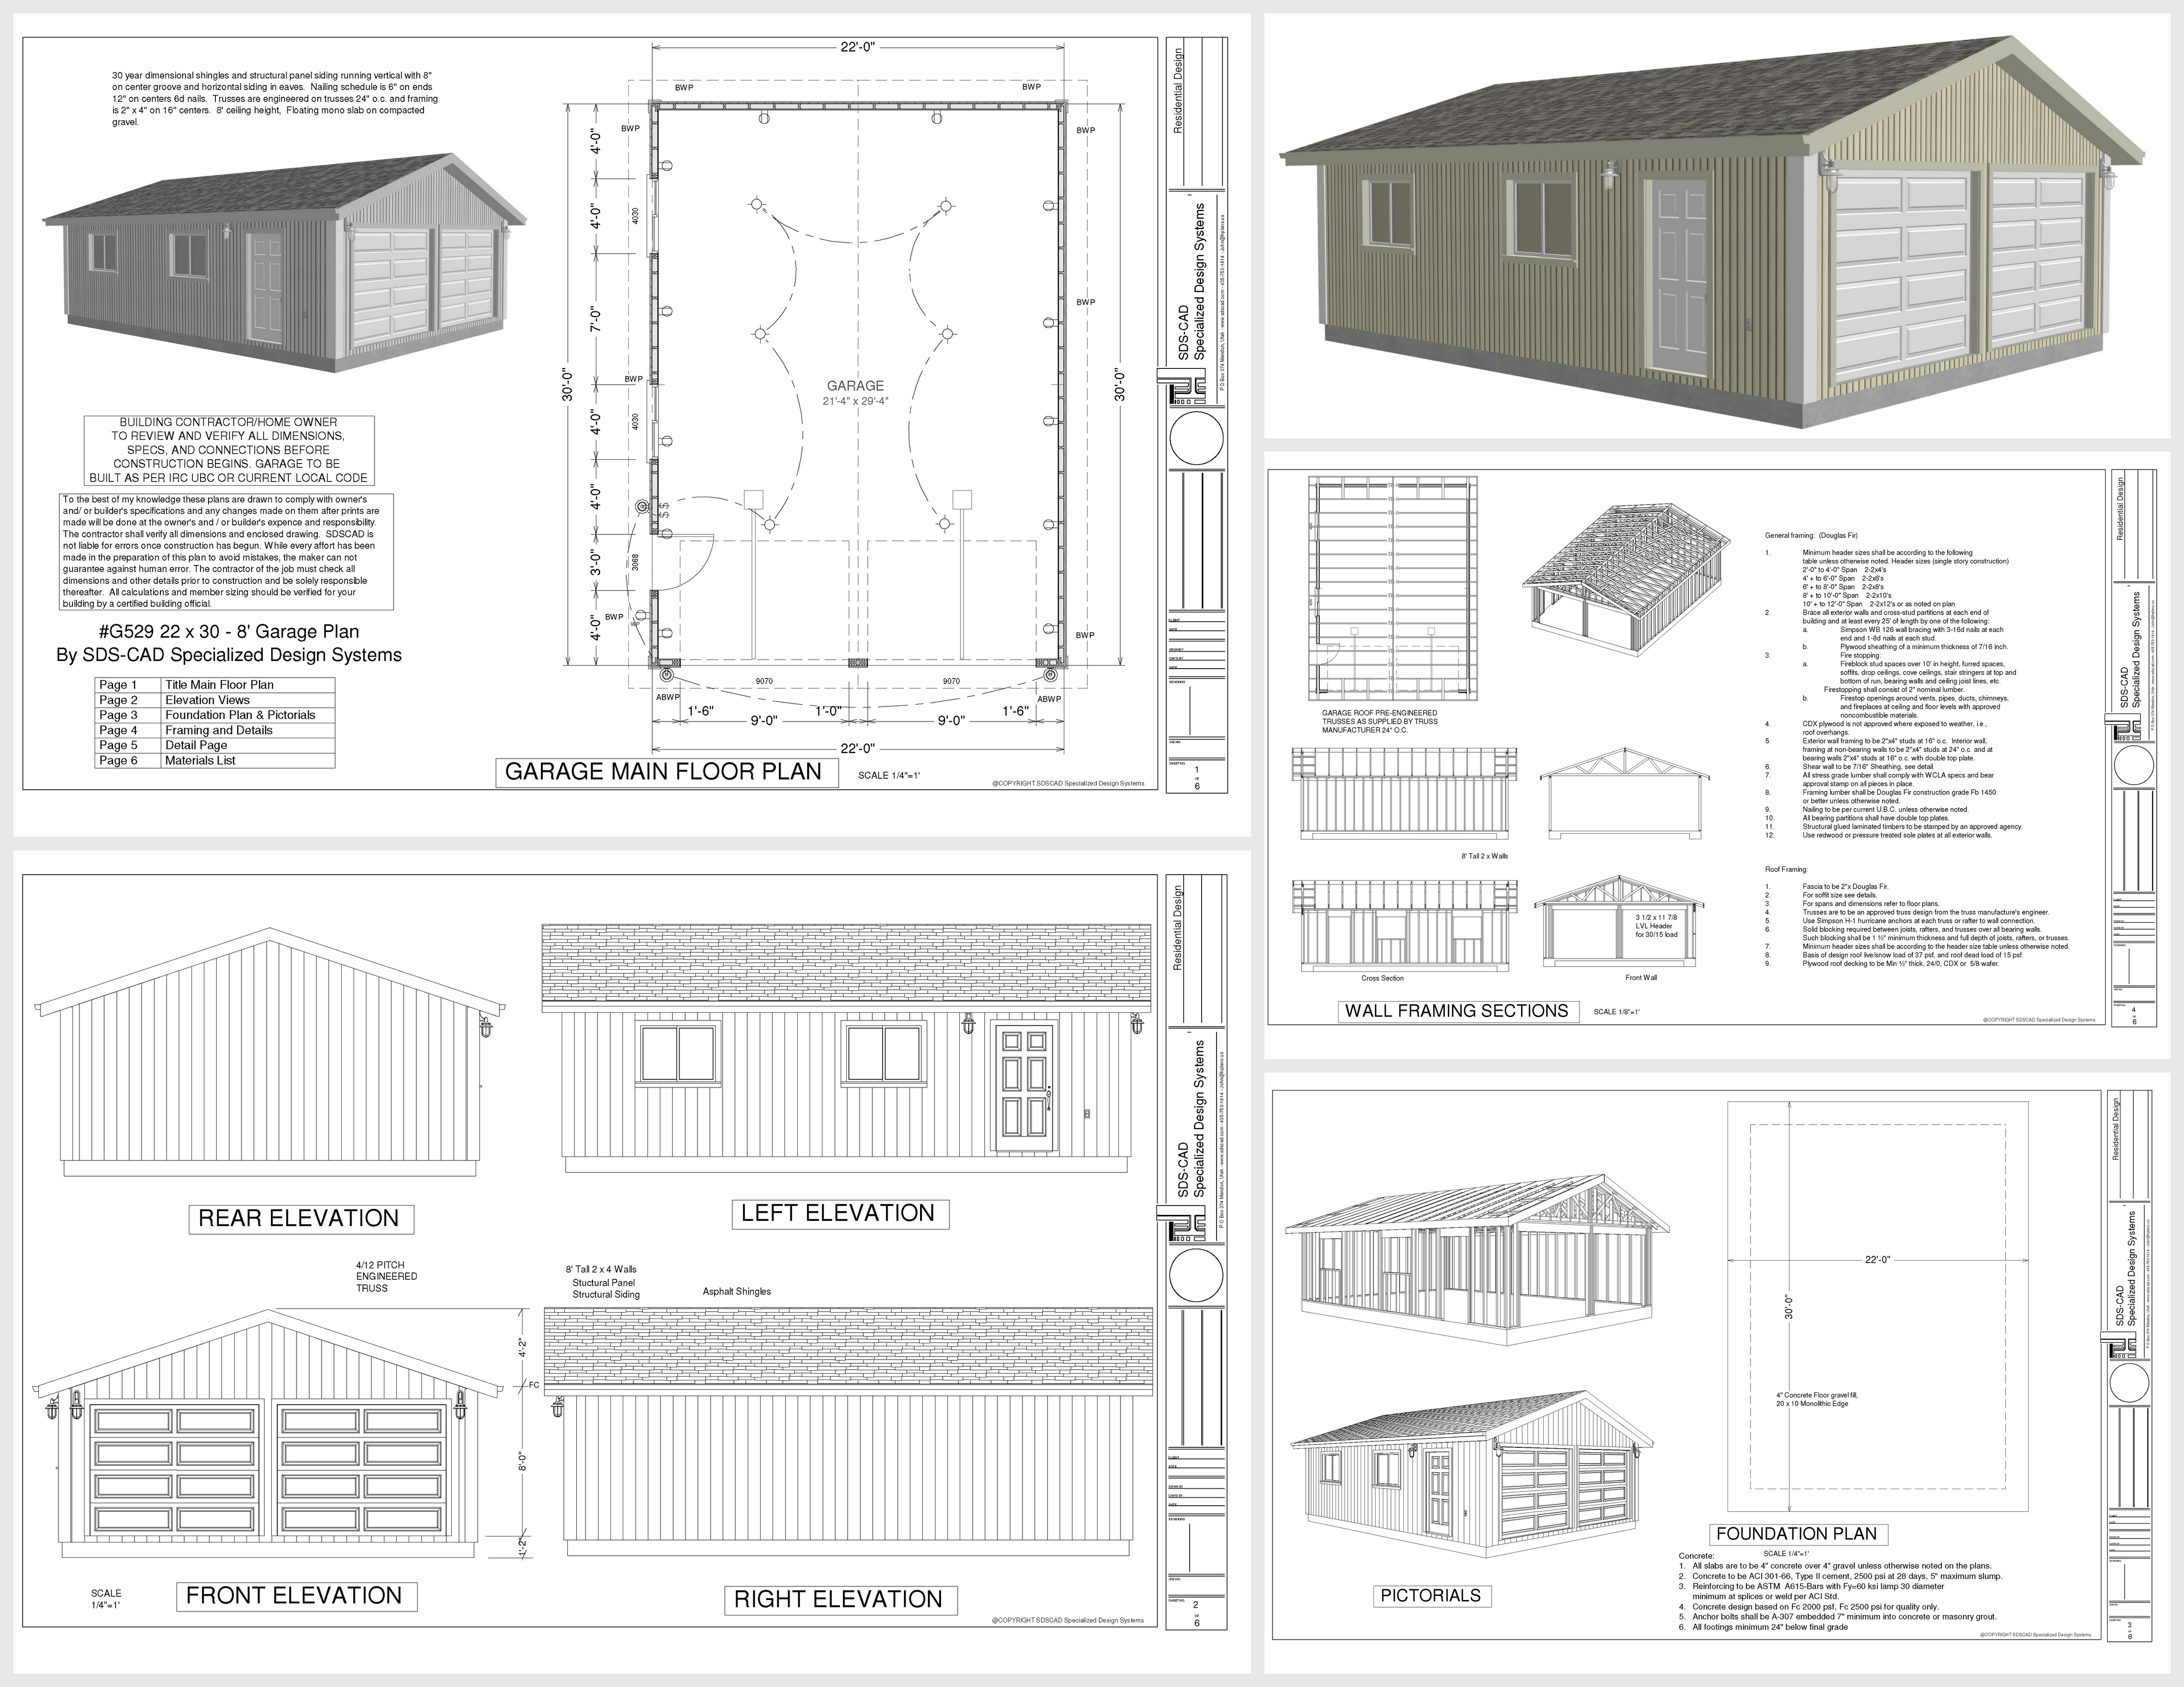 Free garage plans g529 22 x 30 x 8 garage plans dwg and pdf Free garage blueprints